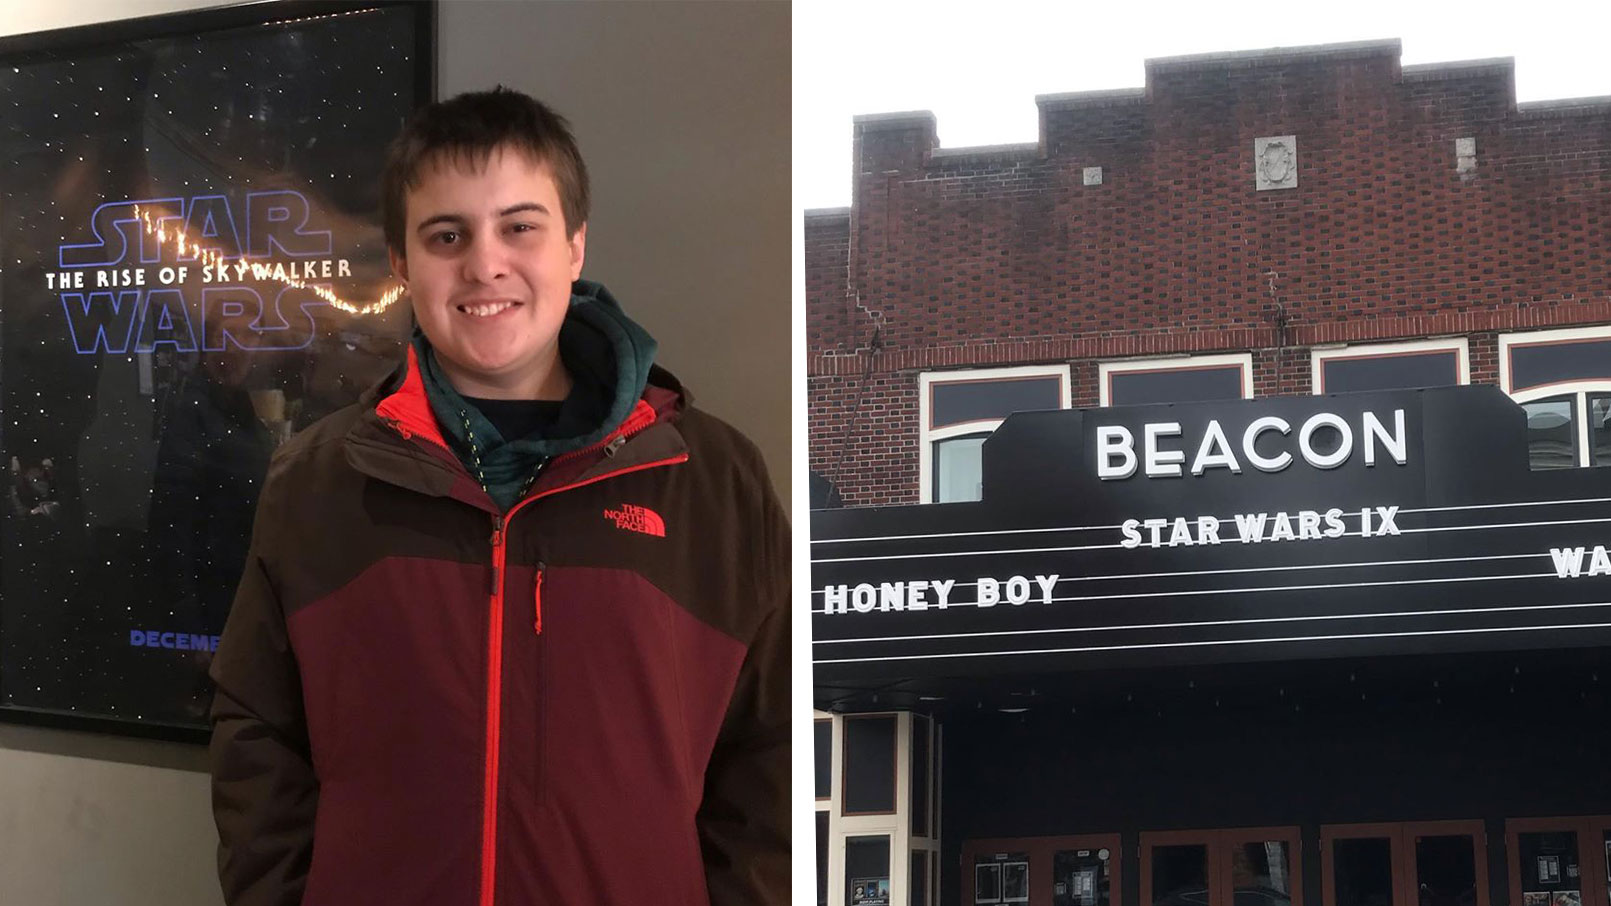 Theater helps teen see Star Wars